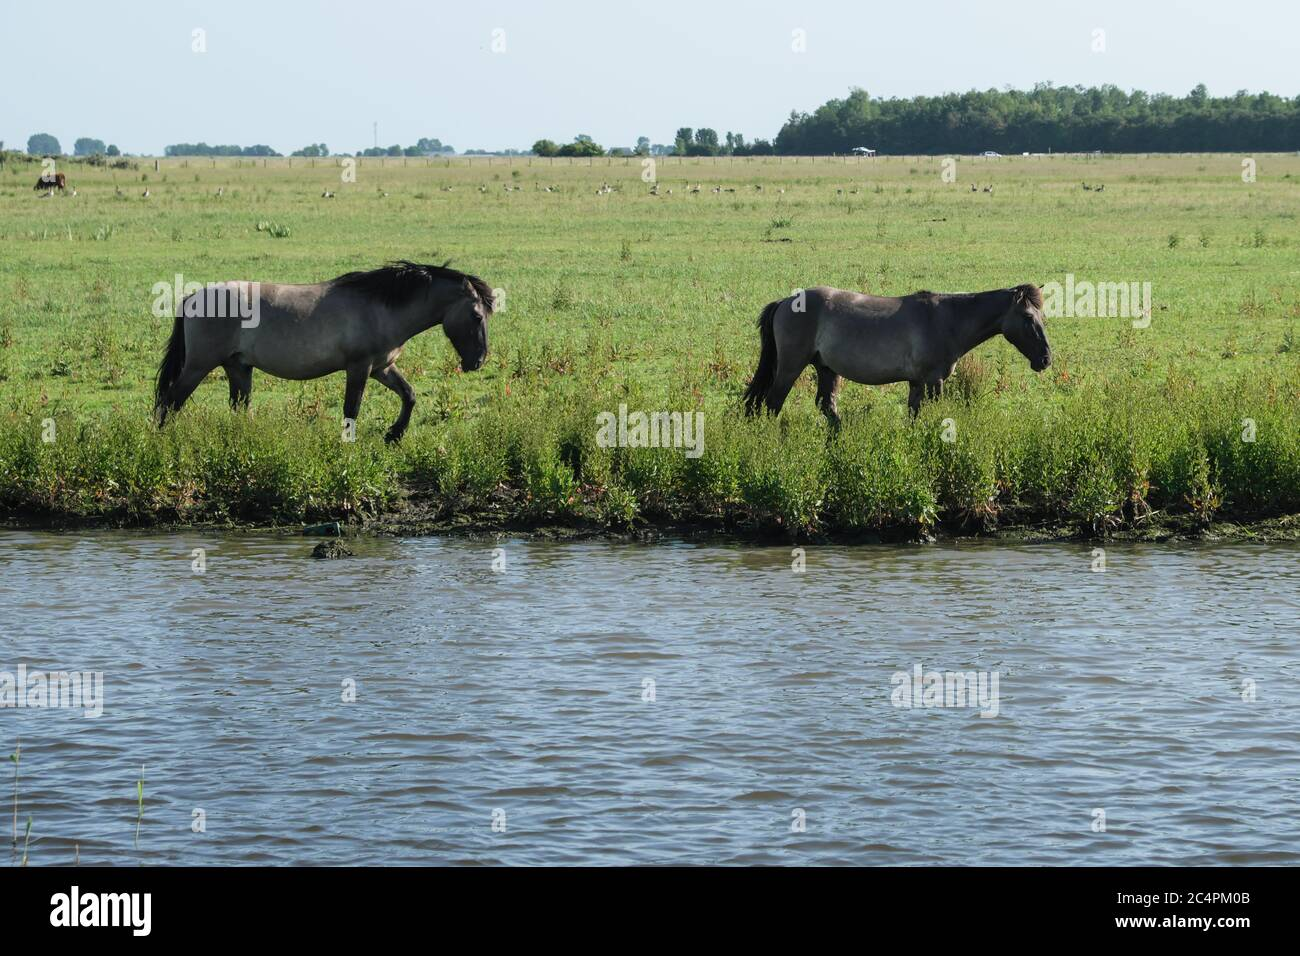 Europe Netherland - Horses on the shore of a canal in Holland Stock Photo